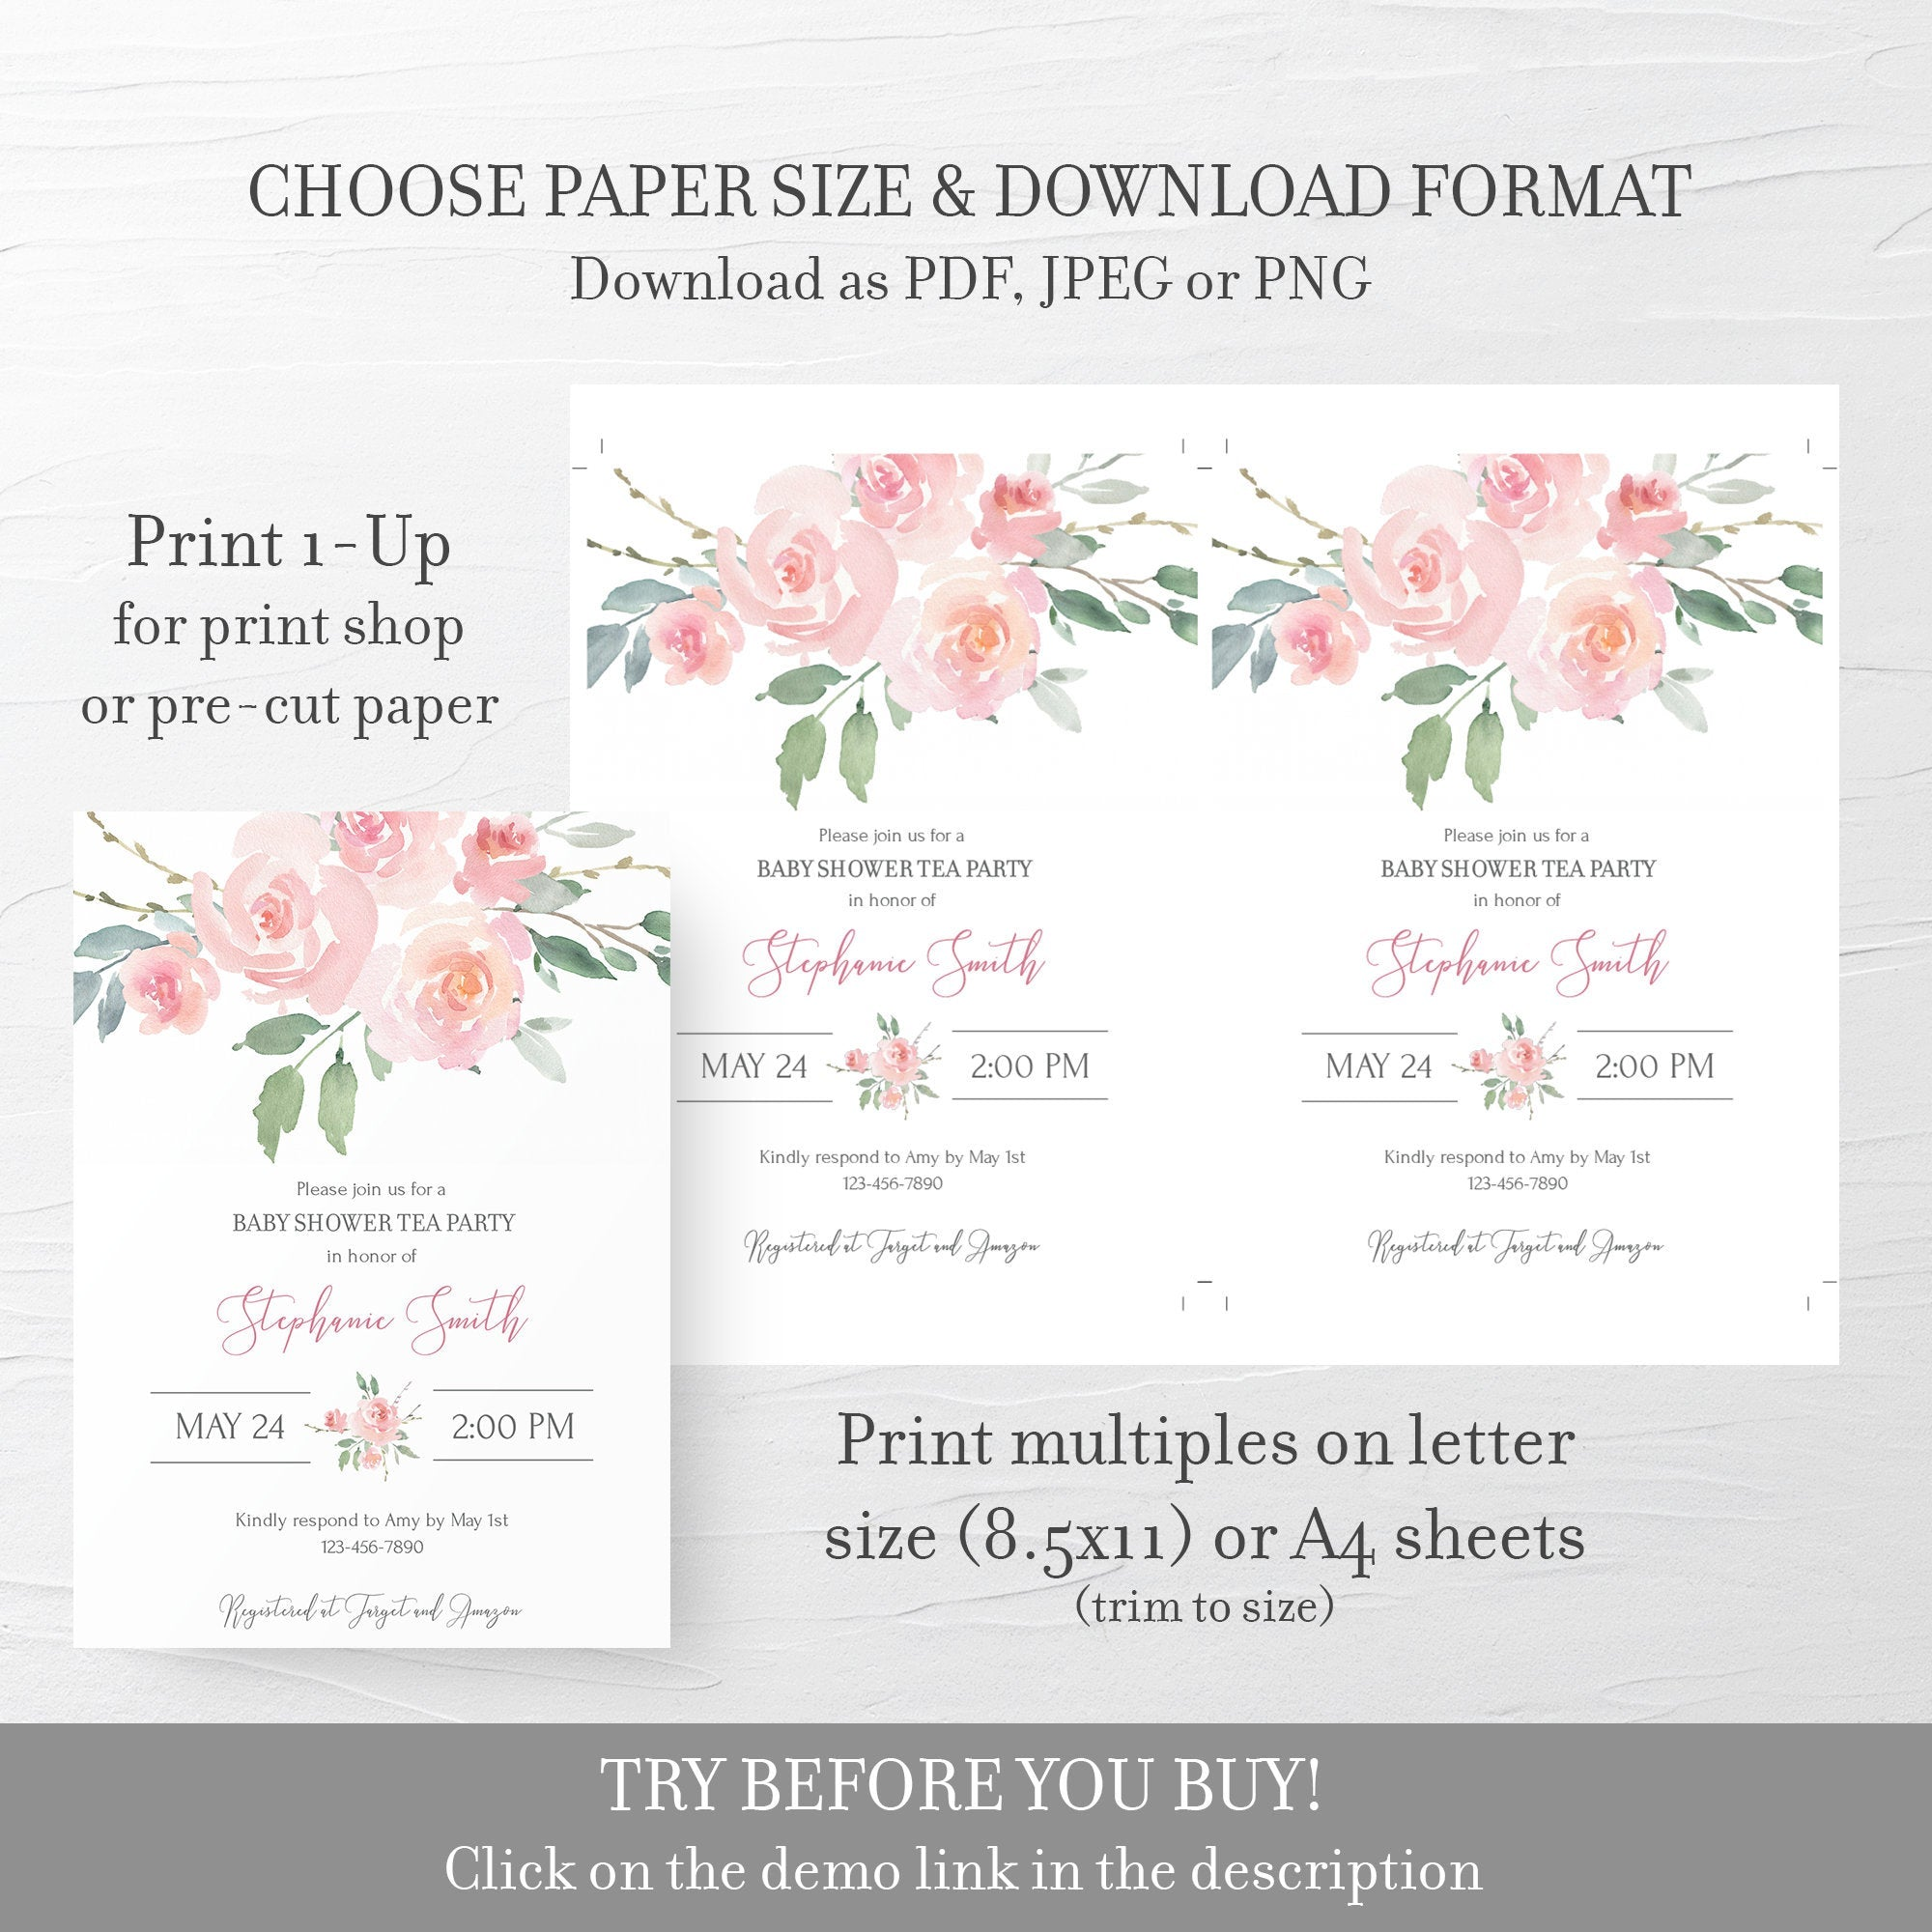 Tea Party Baby Shower Invitation Template, Pink Floral Baby Shower Invite Printable, Editable DIGITAL DOWNLOAD - FR100